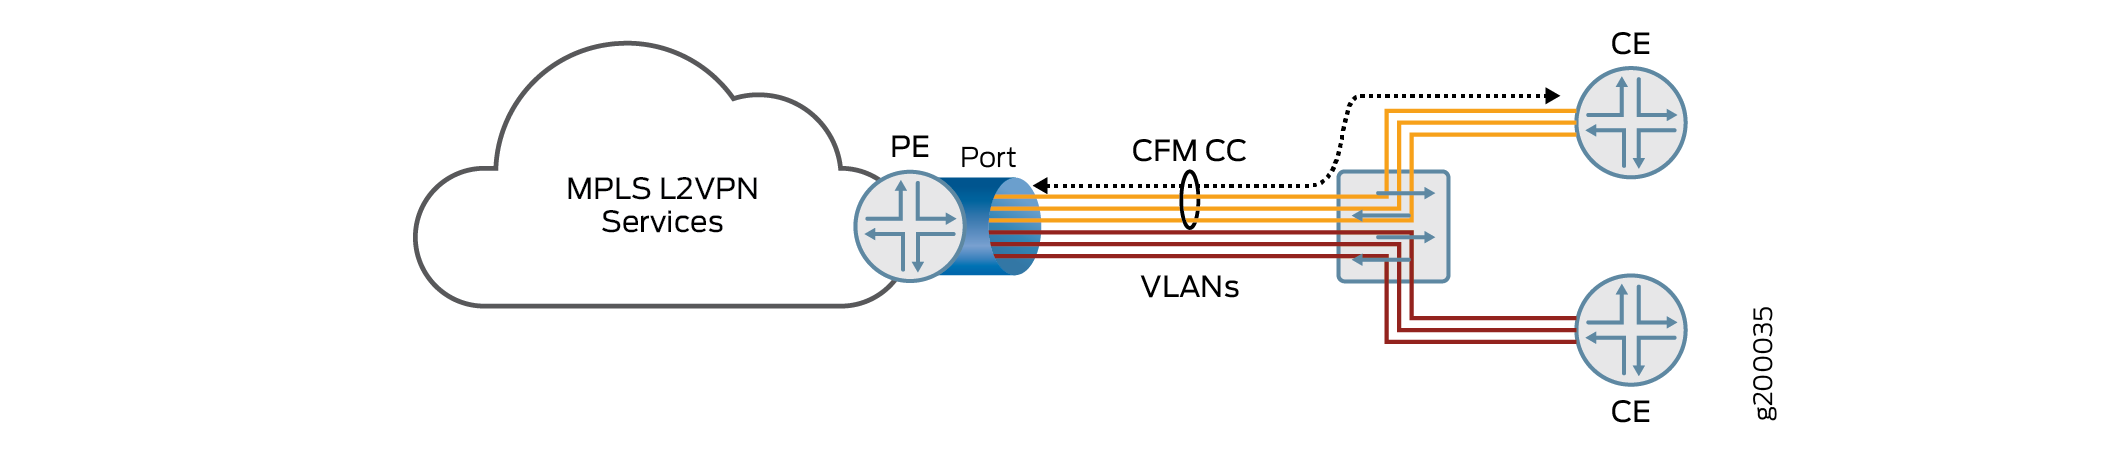 Topology of Multiple VLAN Services Sharing a Single Port on PE Router Destined to Multiple CE Routers